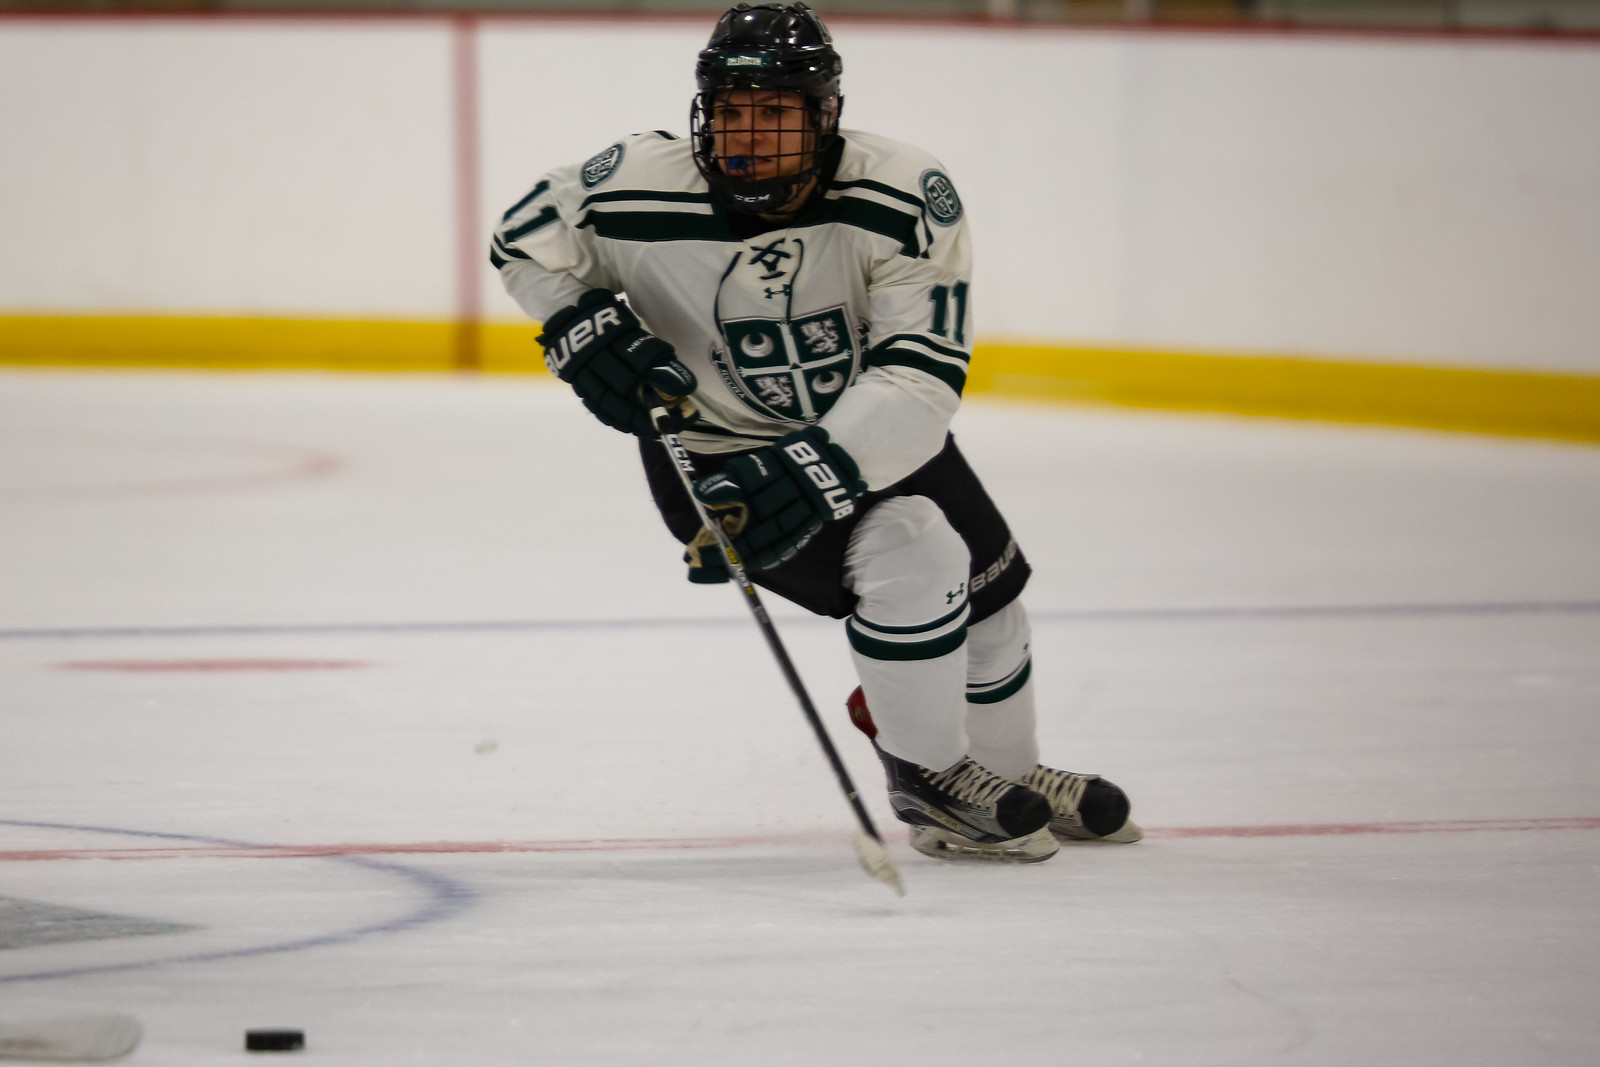 Delbarton Hockey Starts State Tournament With Big Win Over Mka